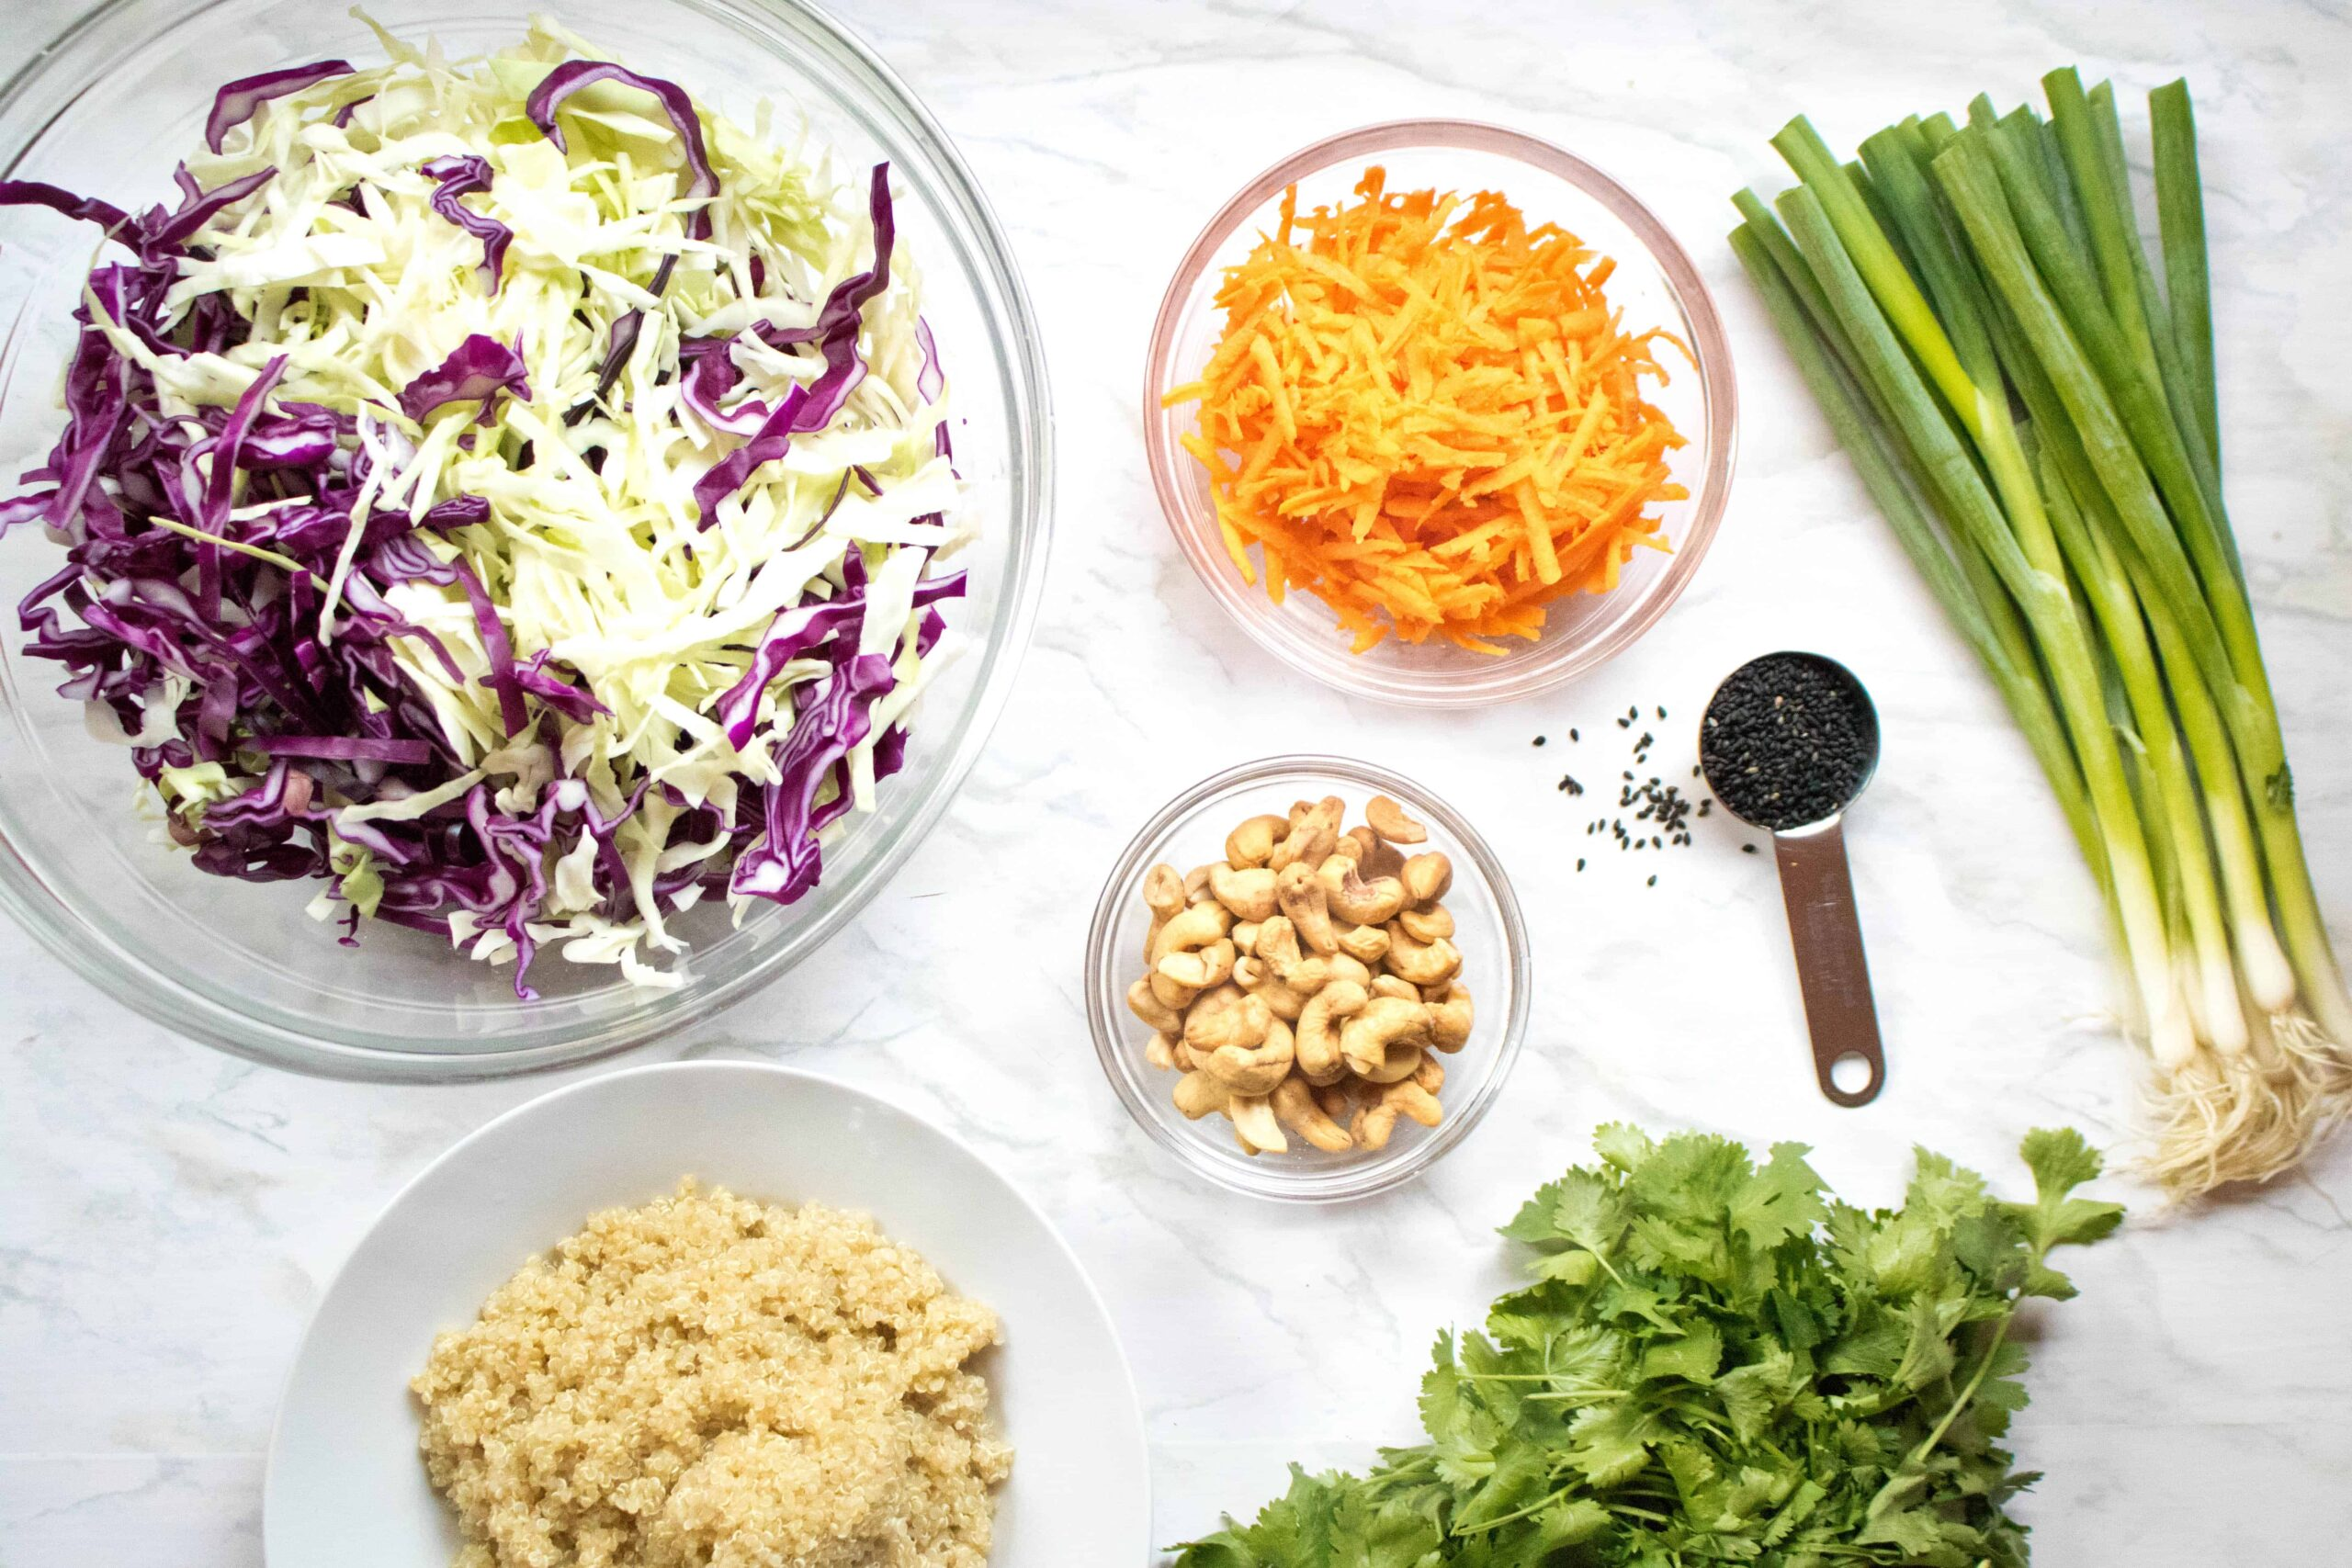 This Asian Sesame Ginger Slaw isn't your average slaw!  It's heartier with the addition of quinoa, but also mayo free and lighter with a delicious sesame ginger dressing!